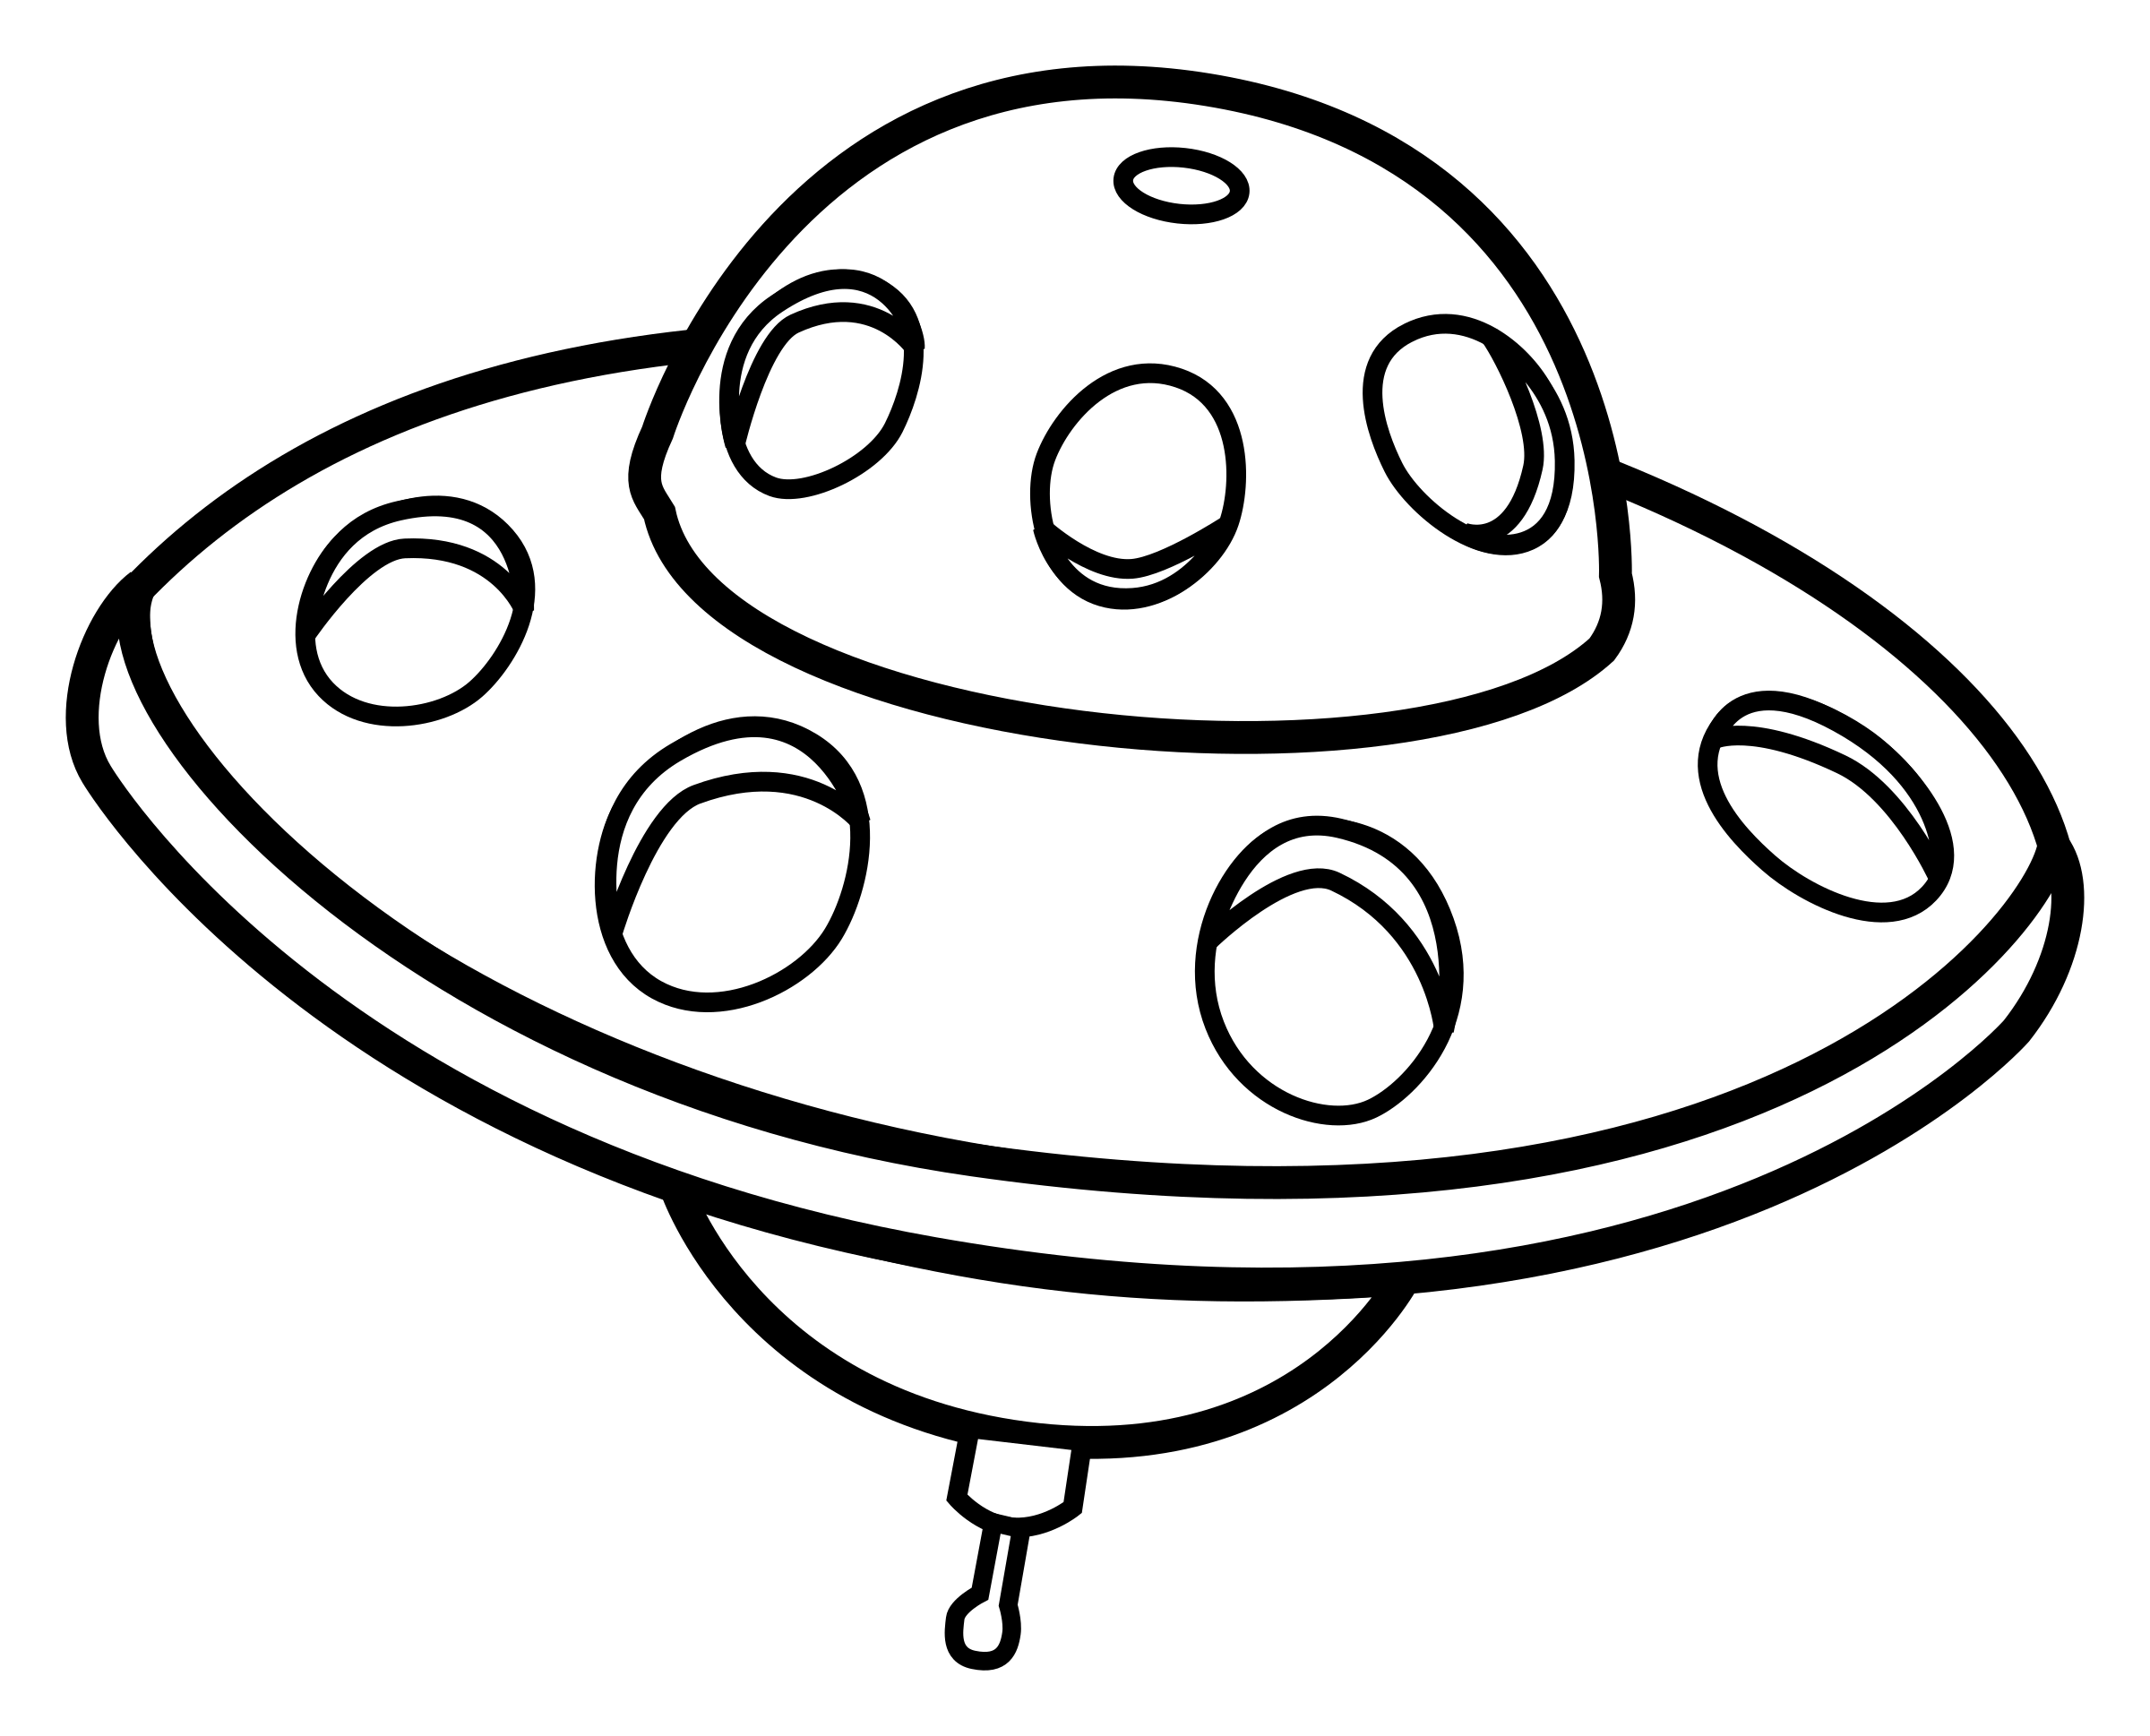 UFO clipart outline Lineart lineart UFO UFO Clipart